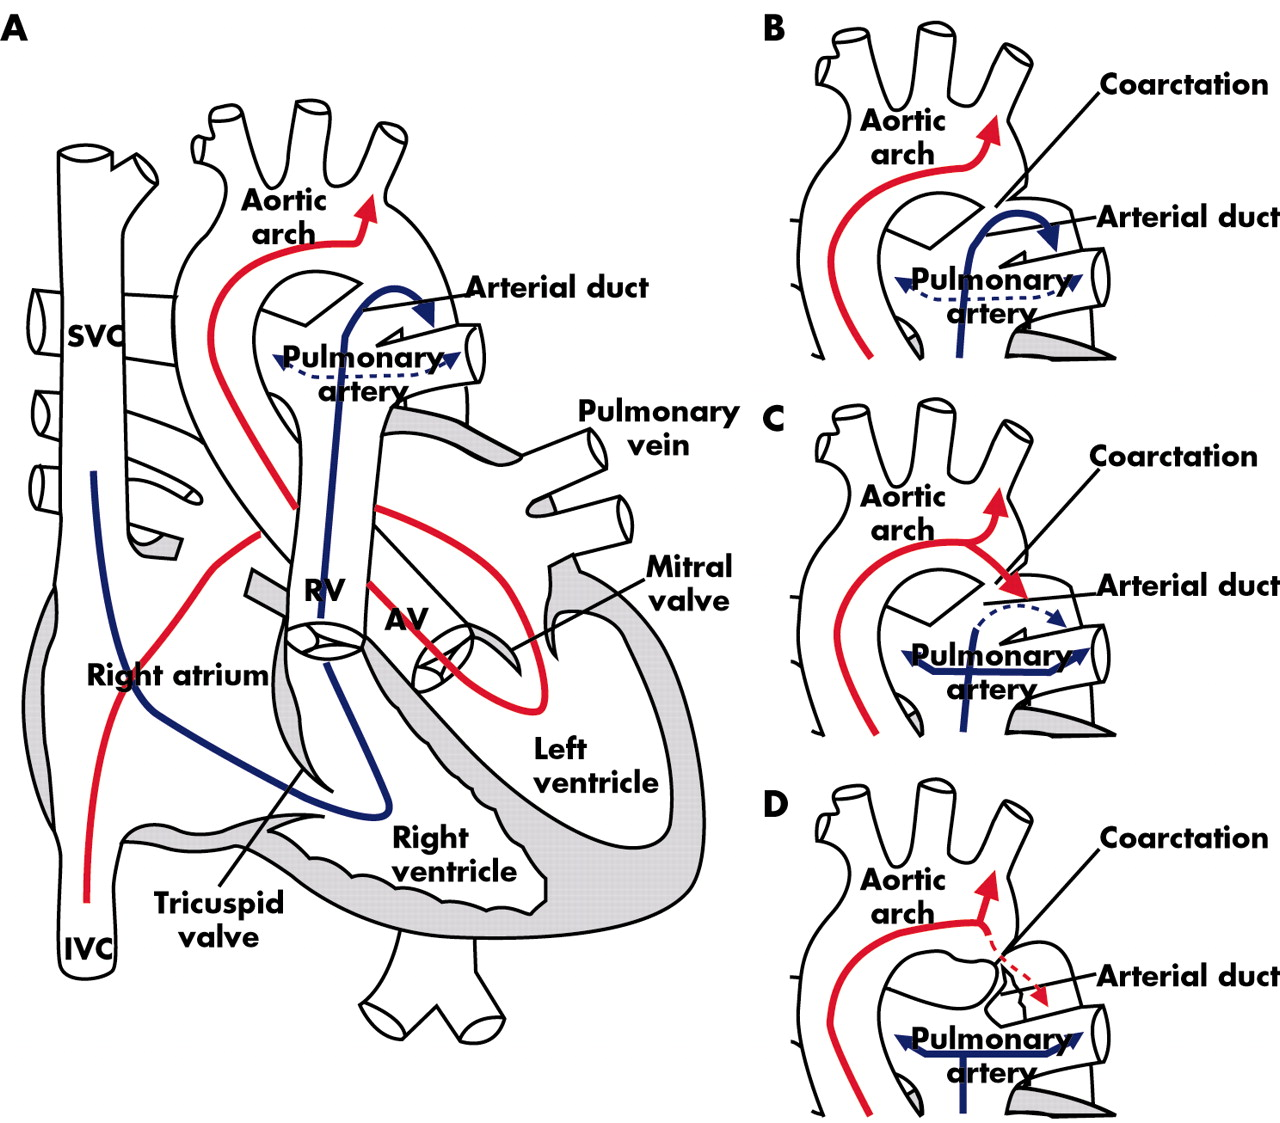 Coarctation of the aorta from fetus to adult: curable ...